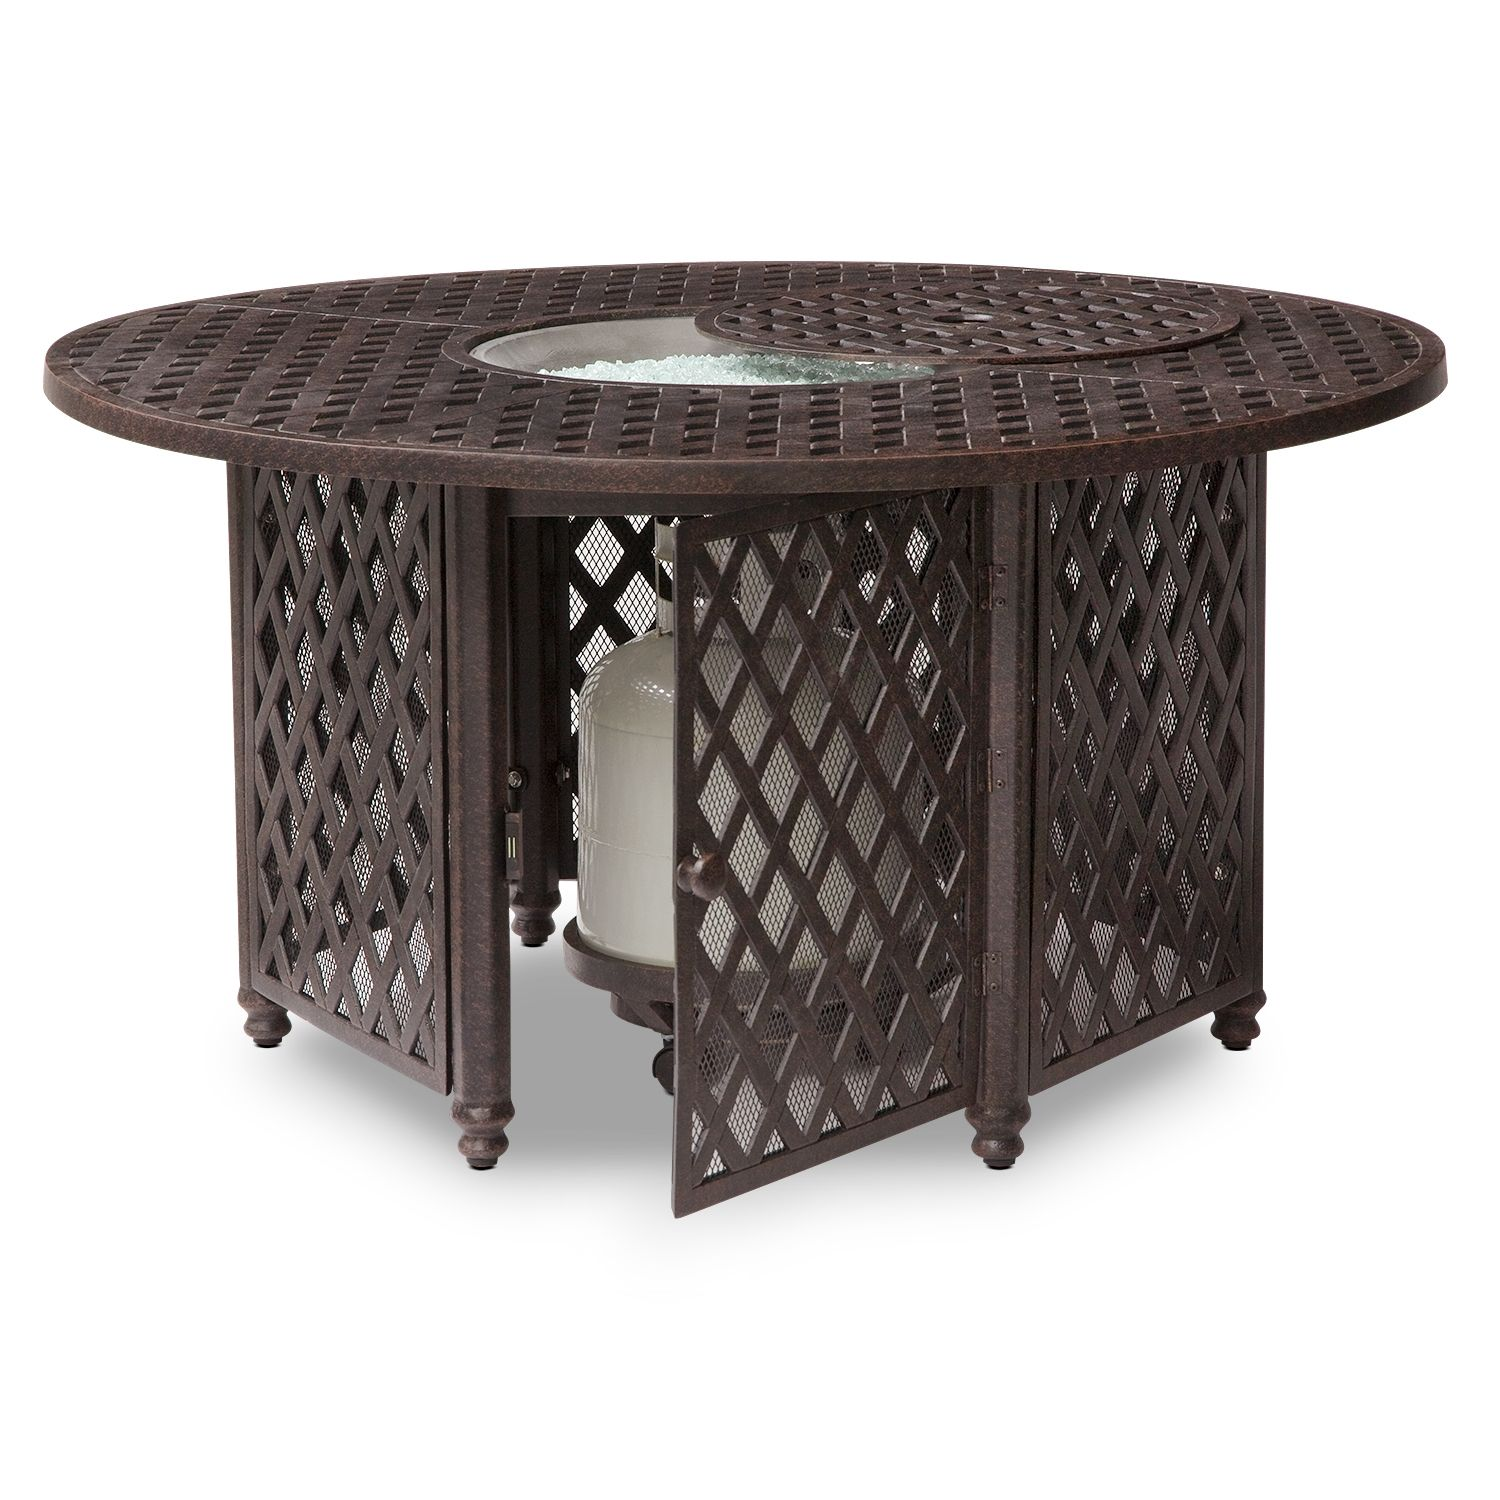 City furniture - Who Doesn't Want A Firepit???? Lattice Firepit Value City